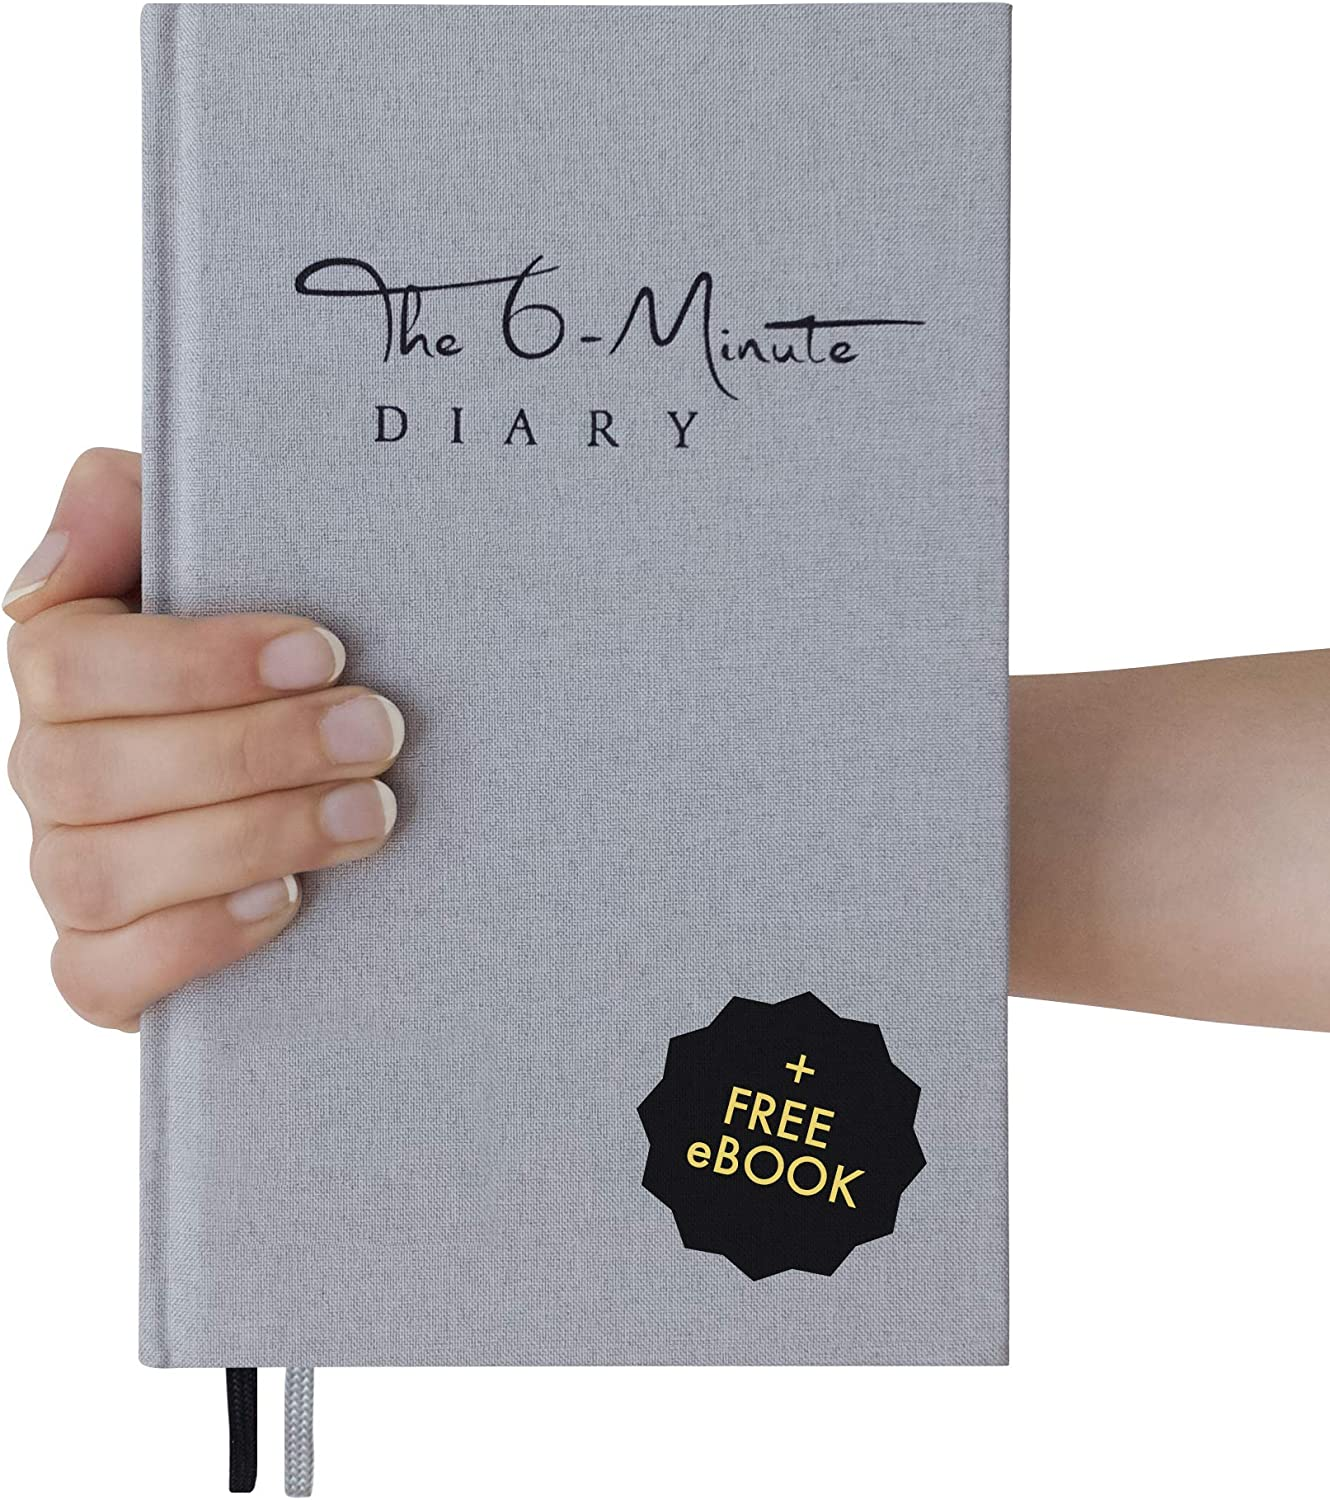 The 6-Minute Diary (Grey) | 6 Minutes a Day for More Mindfulness, Happiness and Productivity | A Simple and Effective Gratitude Journal and Undated Guided Journal | The Perfect Gift